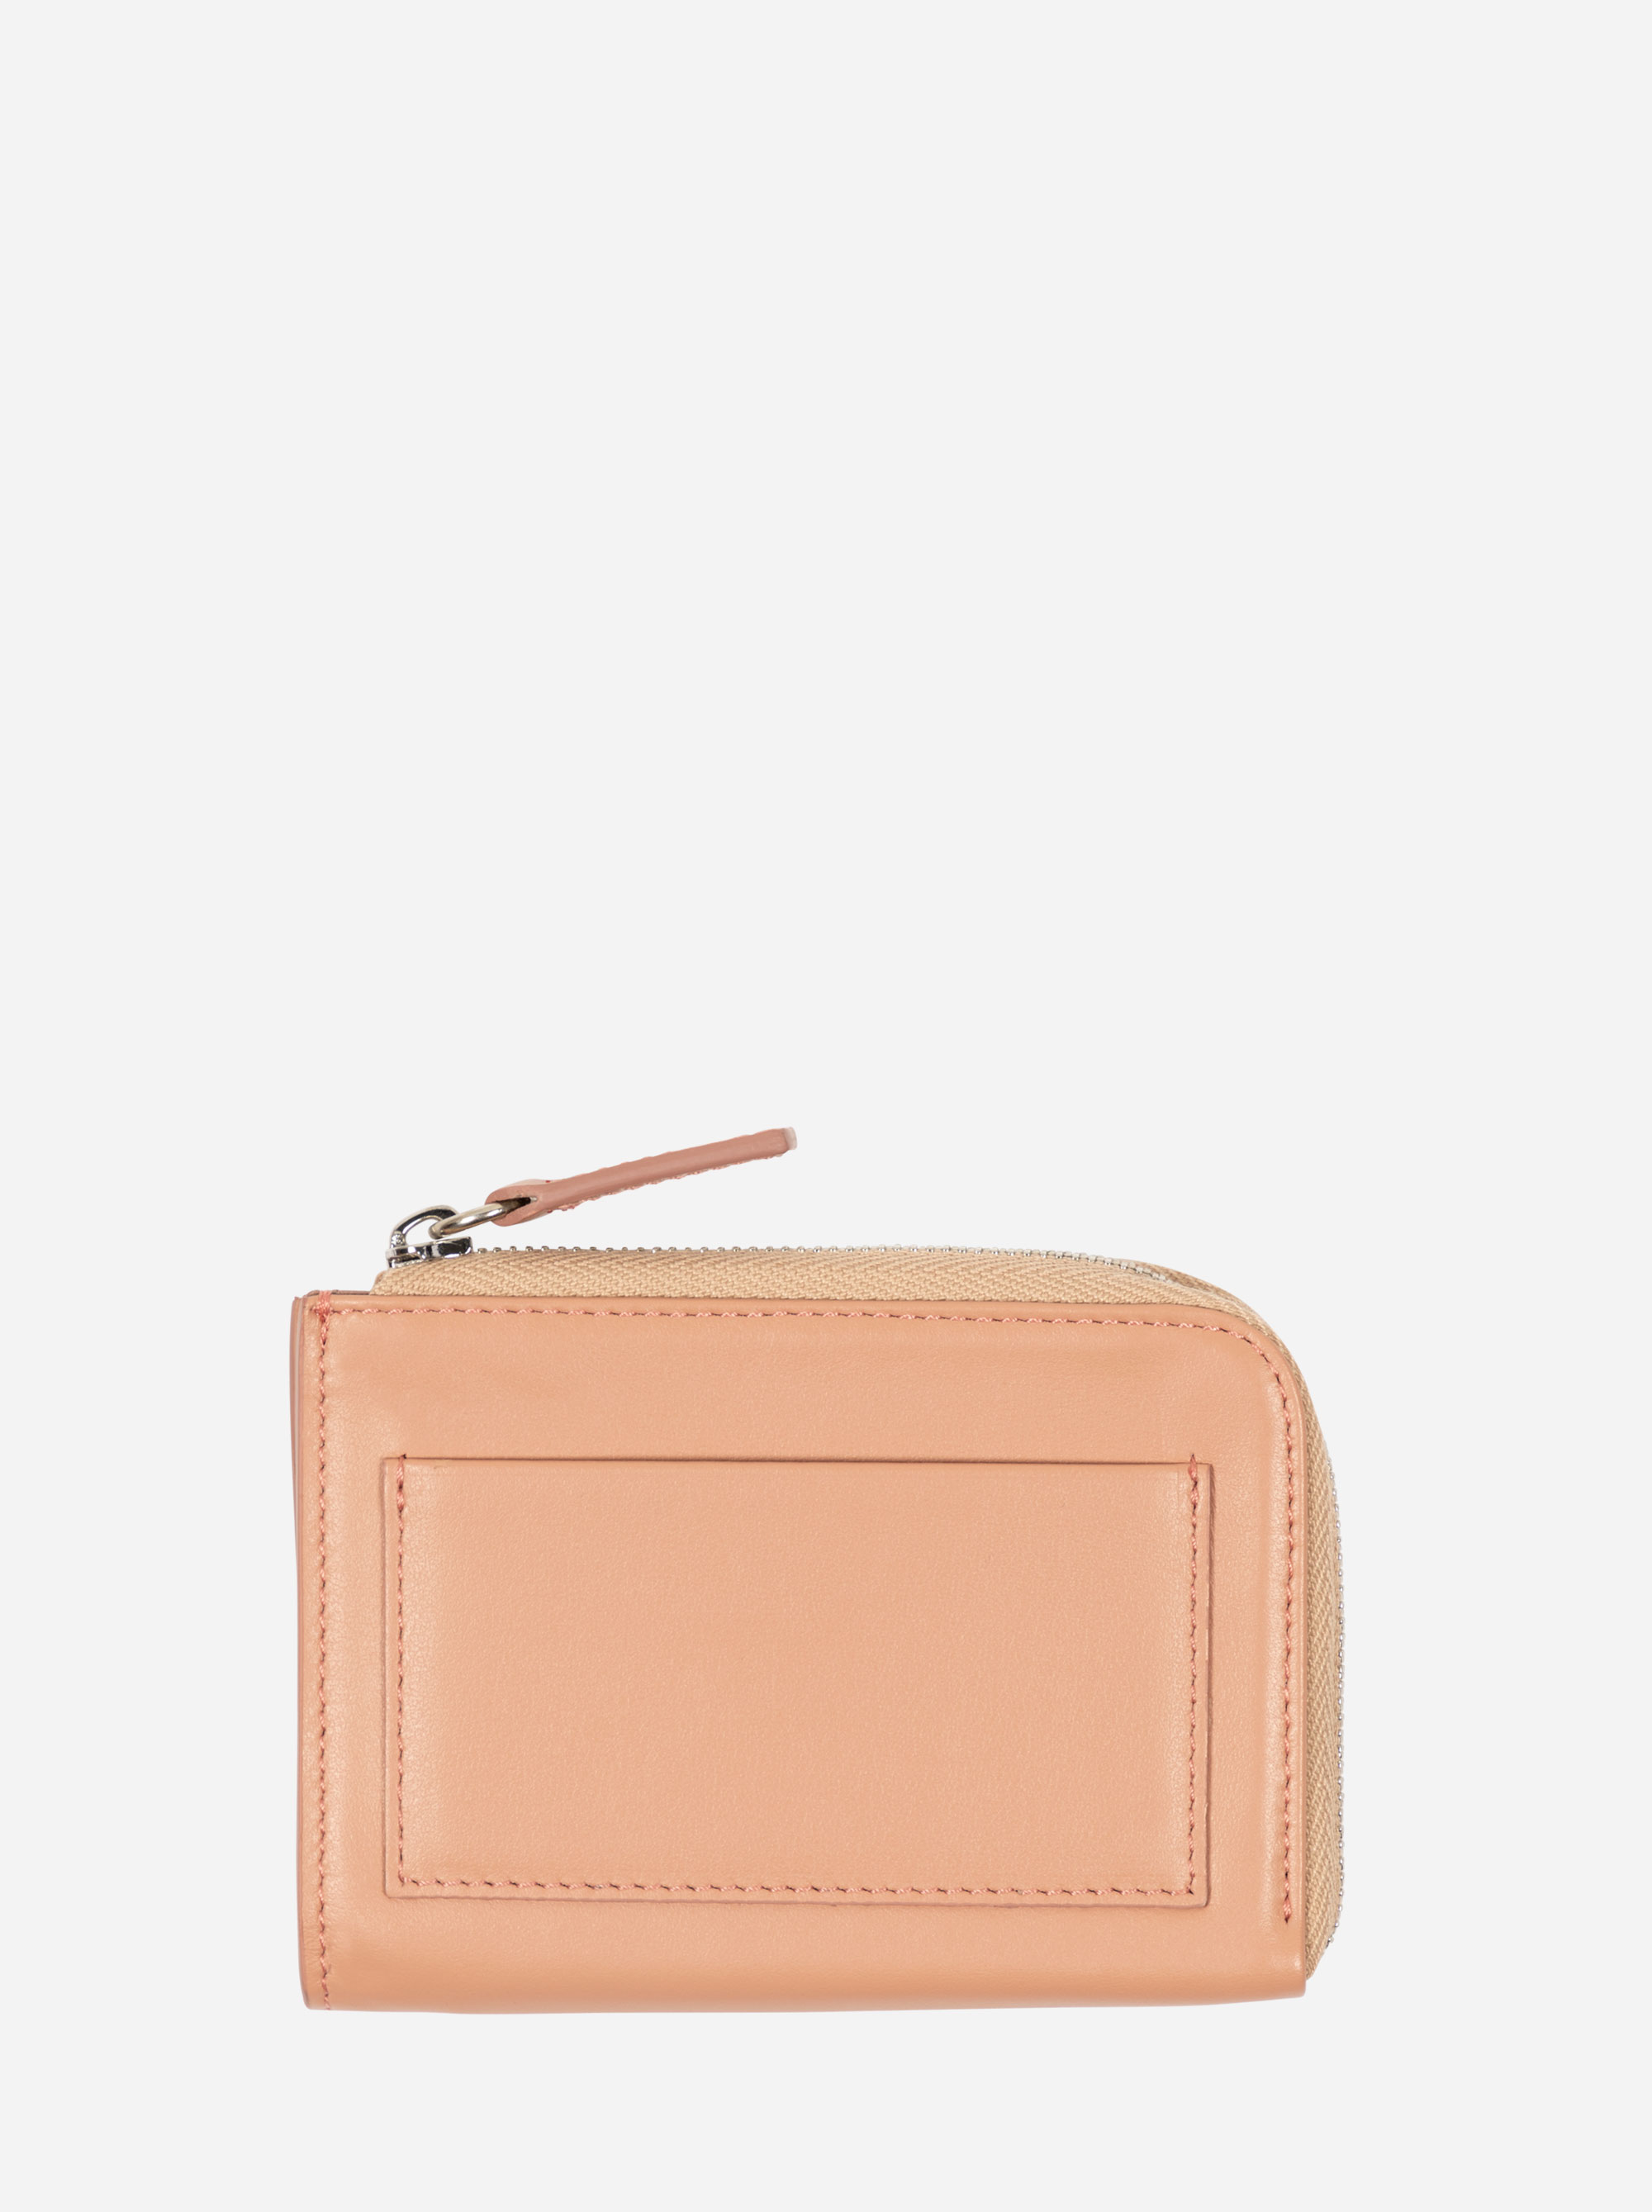 Teym - The Wallet - Pink - 1